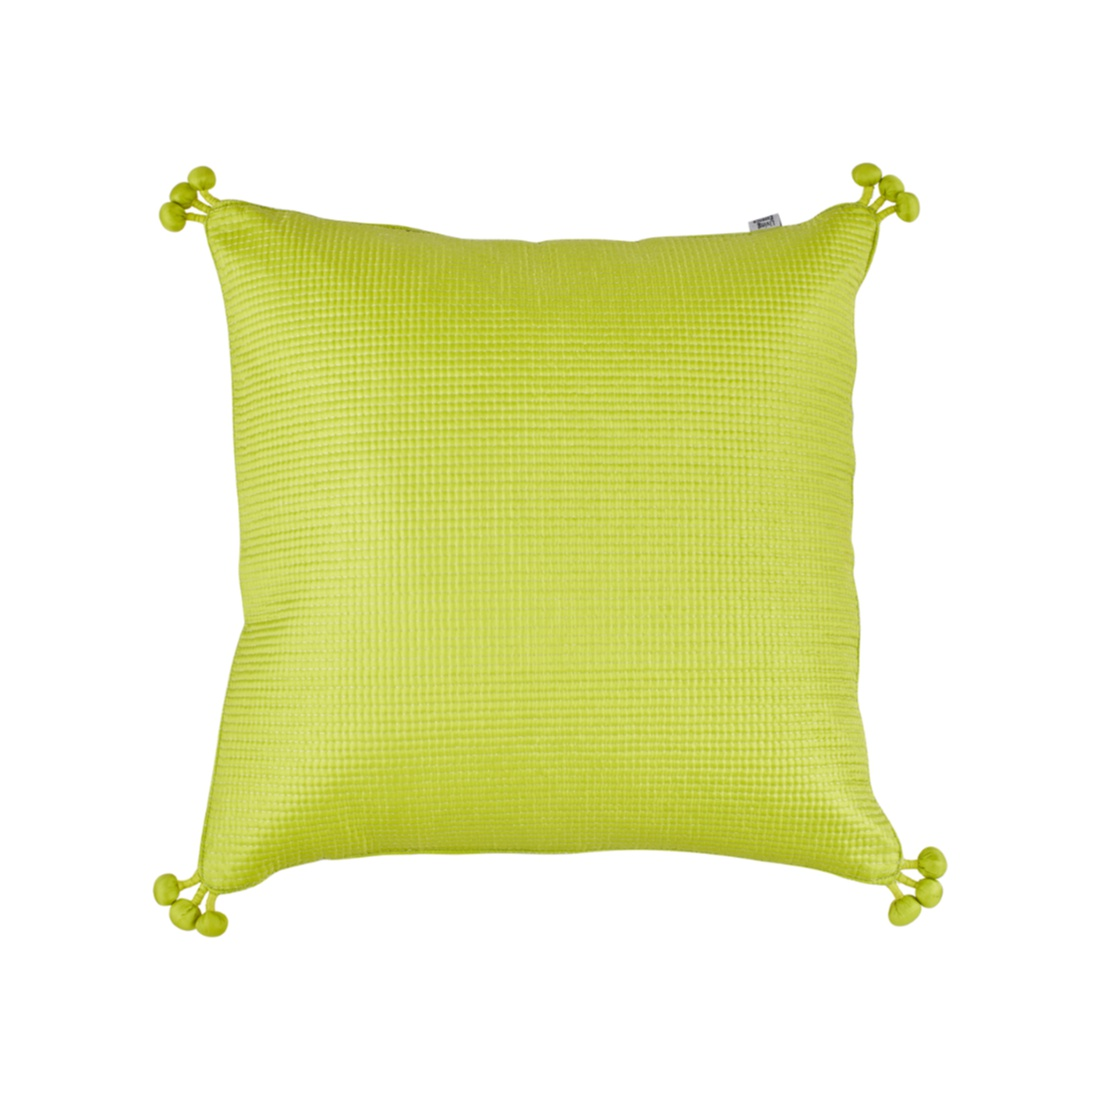 Pompom Cushion Cover 40X40 Cm Citron Silver Polyester Cushion Covers in Citron Silver Colour by Living Essence